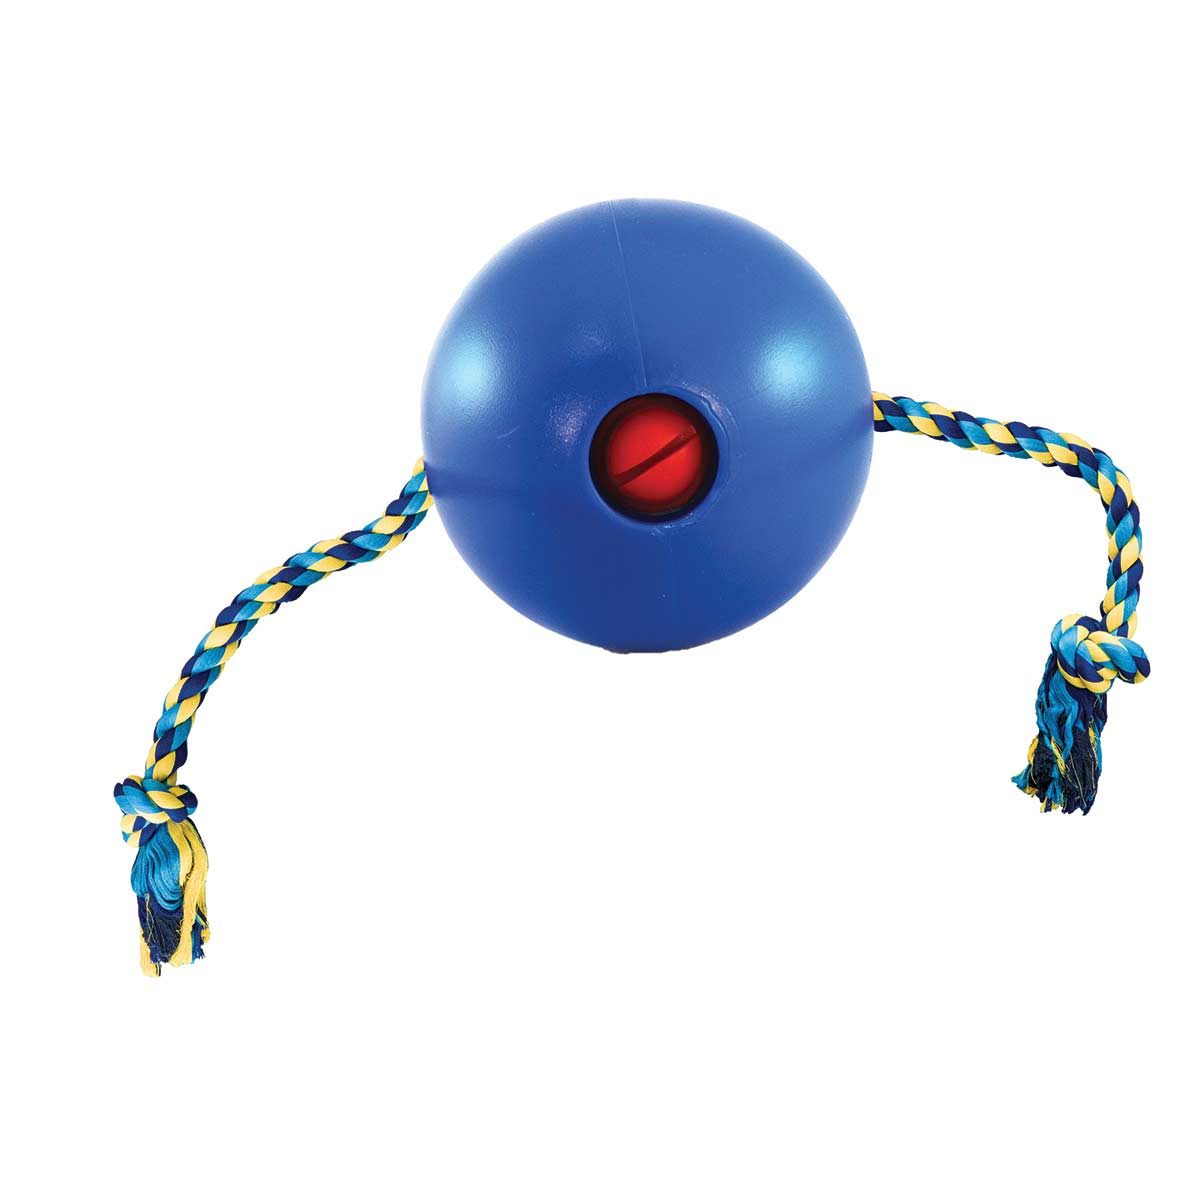 Small Blue Tuggo Dog Toy for Water or Land at Ryan's Pet Supplies